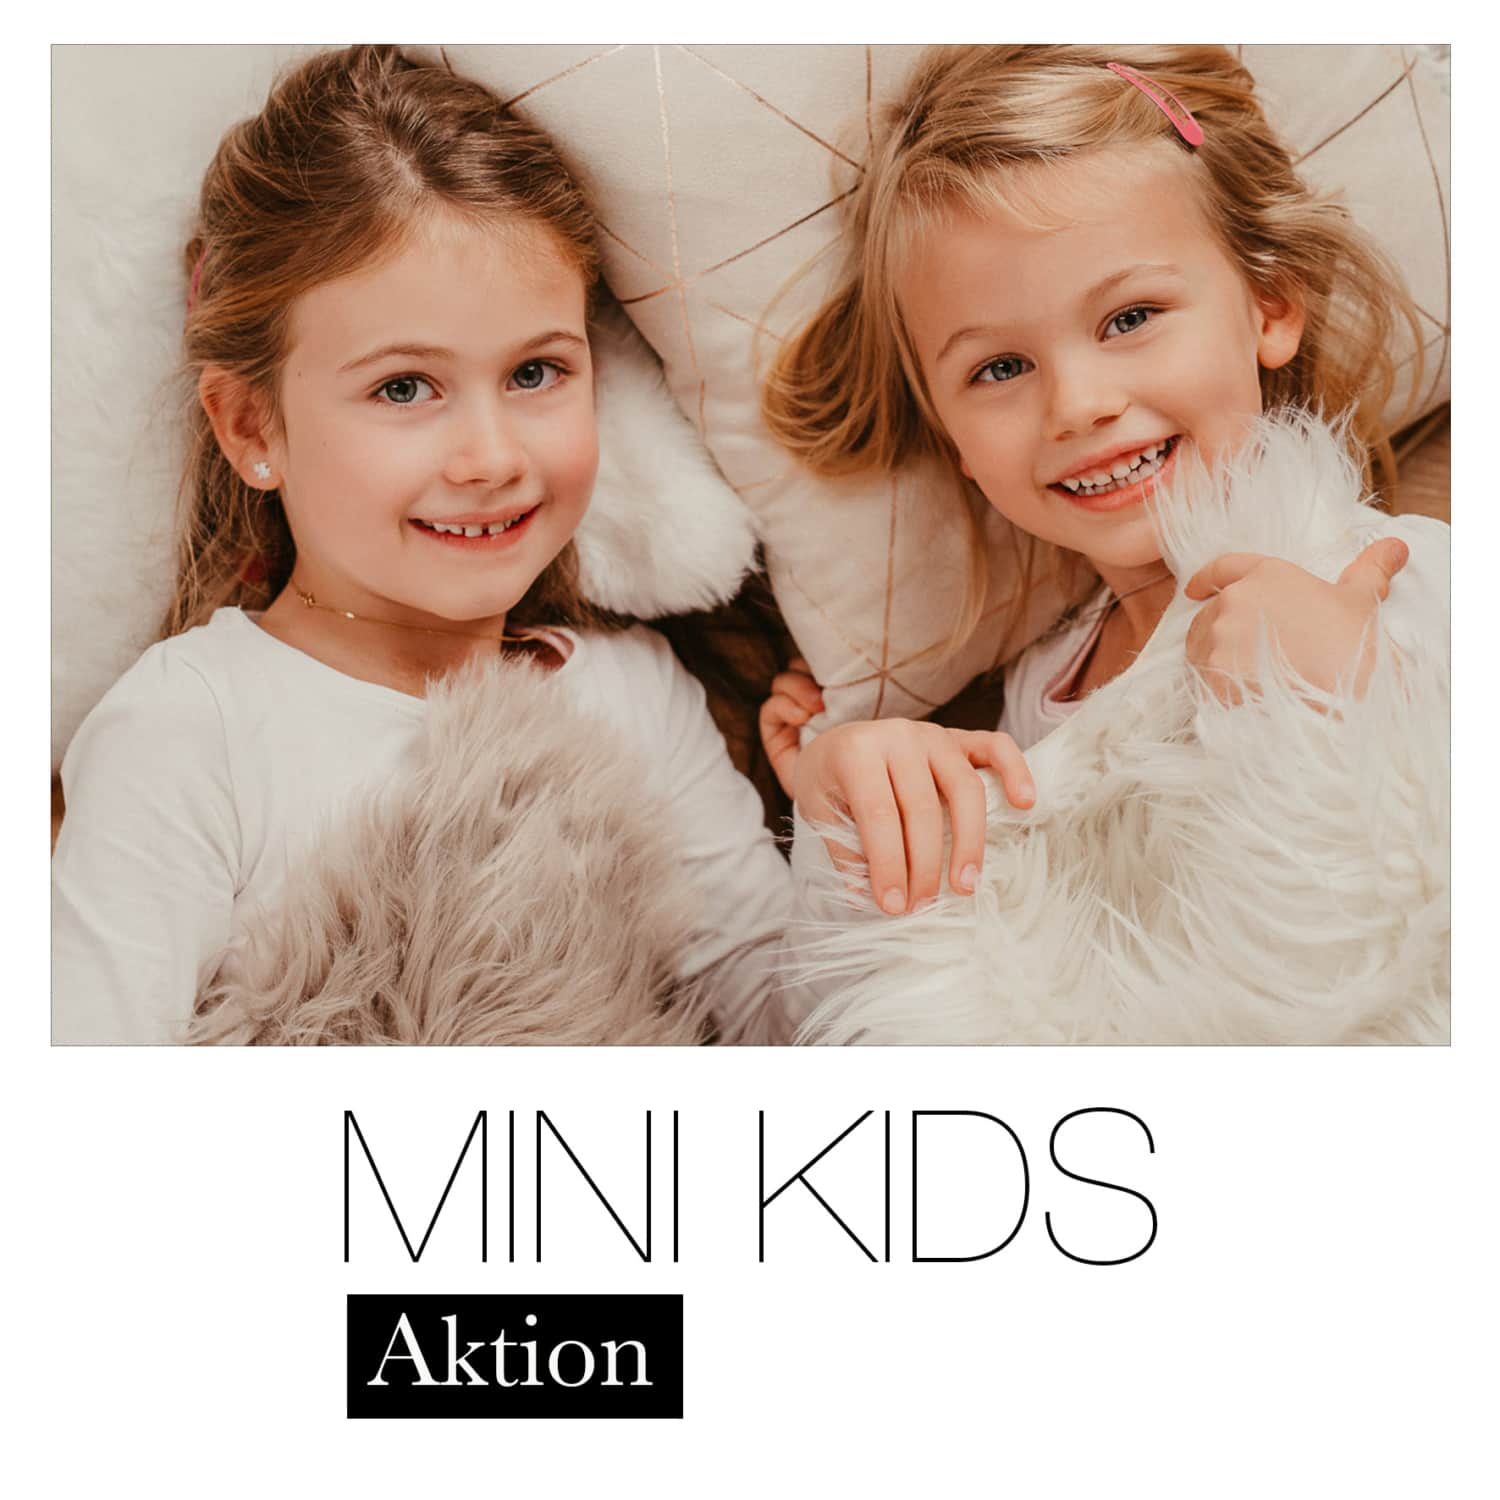 photoart hübner aktion Mini kids Shooting Ratingen NRW Düsseldorf 1